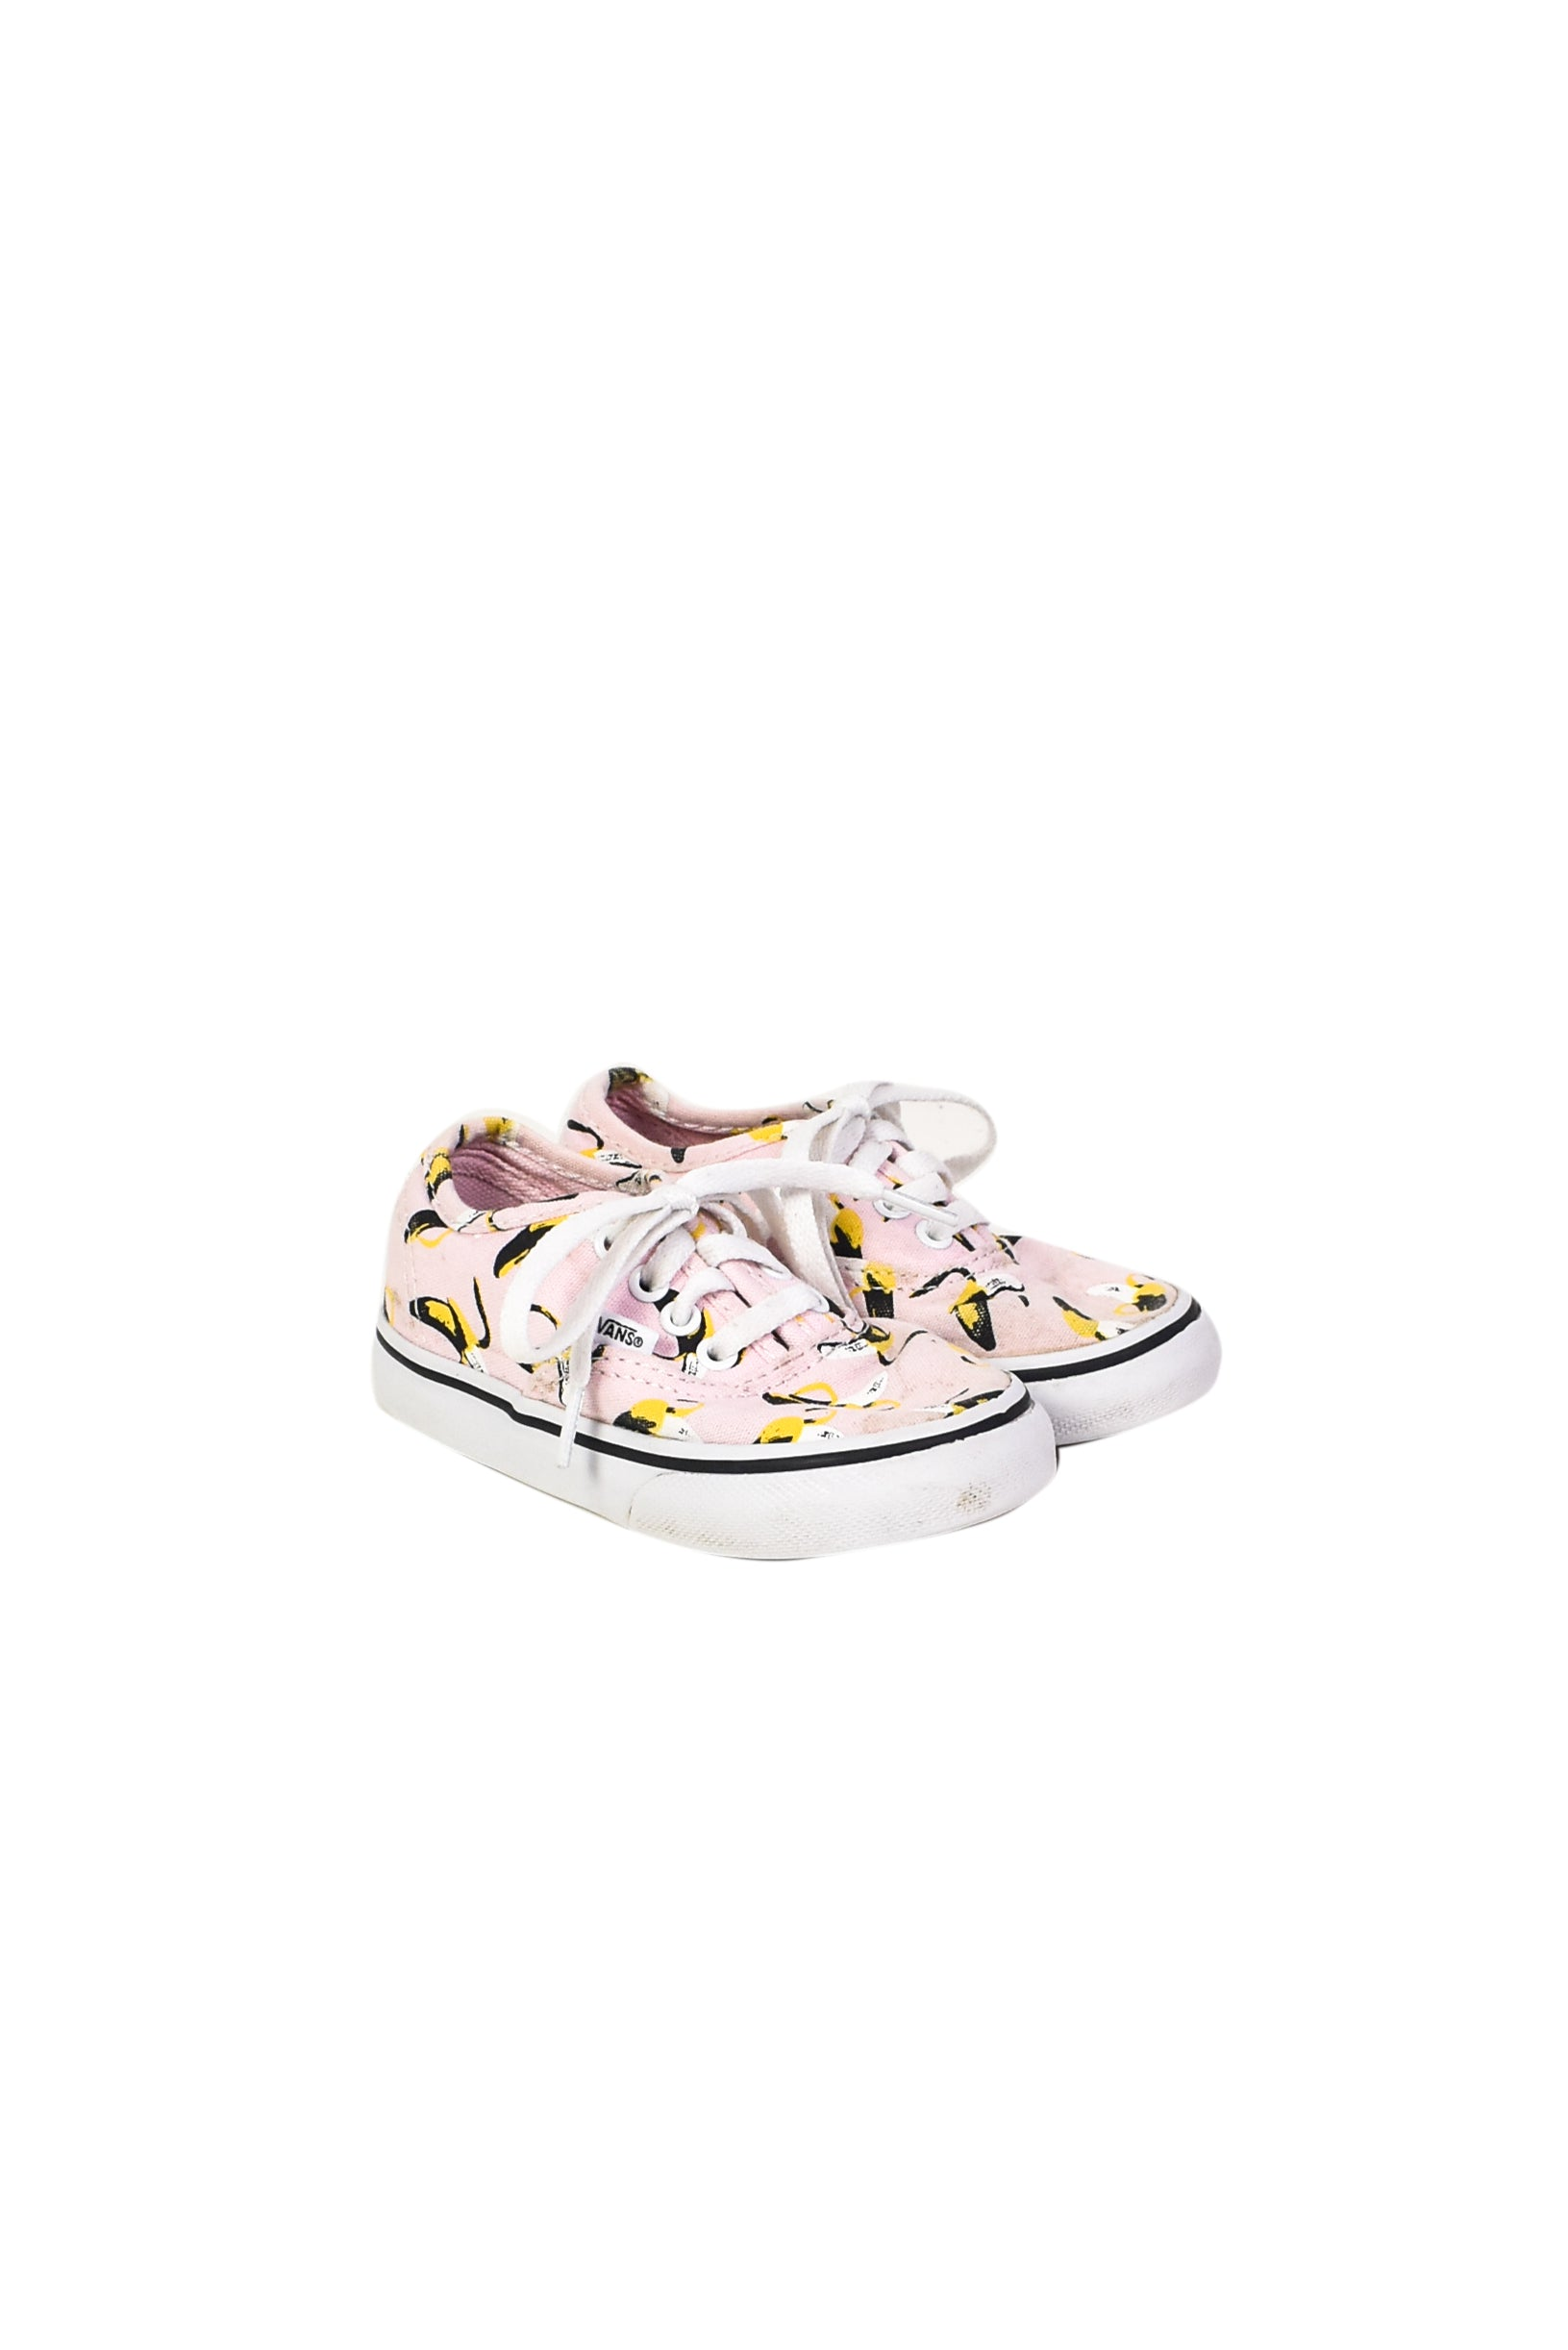 10013220 Vans Baby~Shoes 18-24M (US 6.5) at Retykle